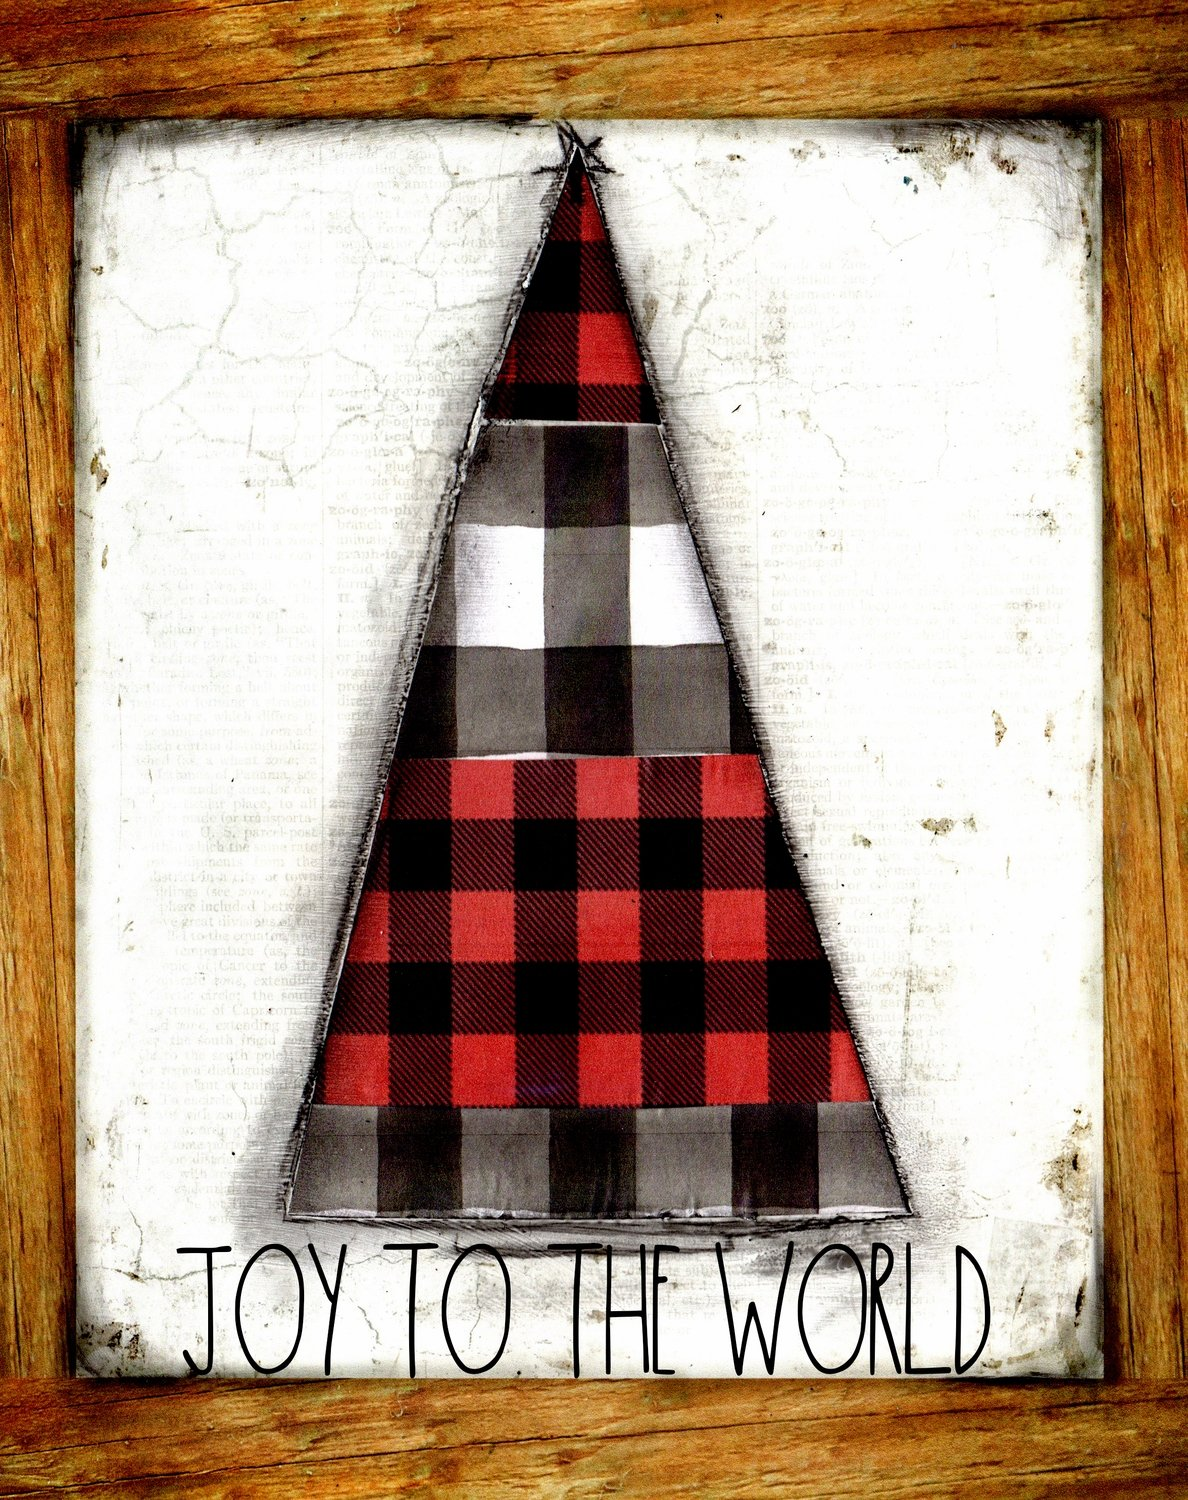 Joy to the world black and red plaid Christmas tree print of the original print on wood